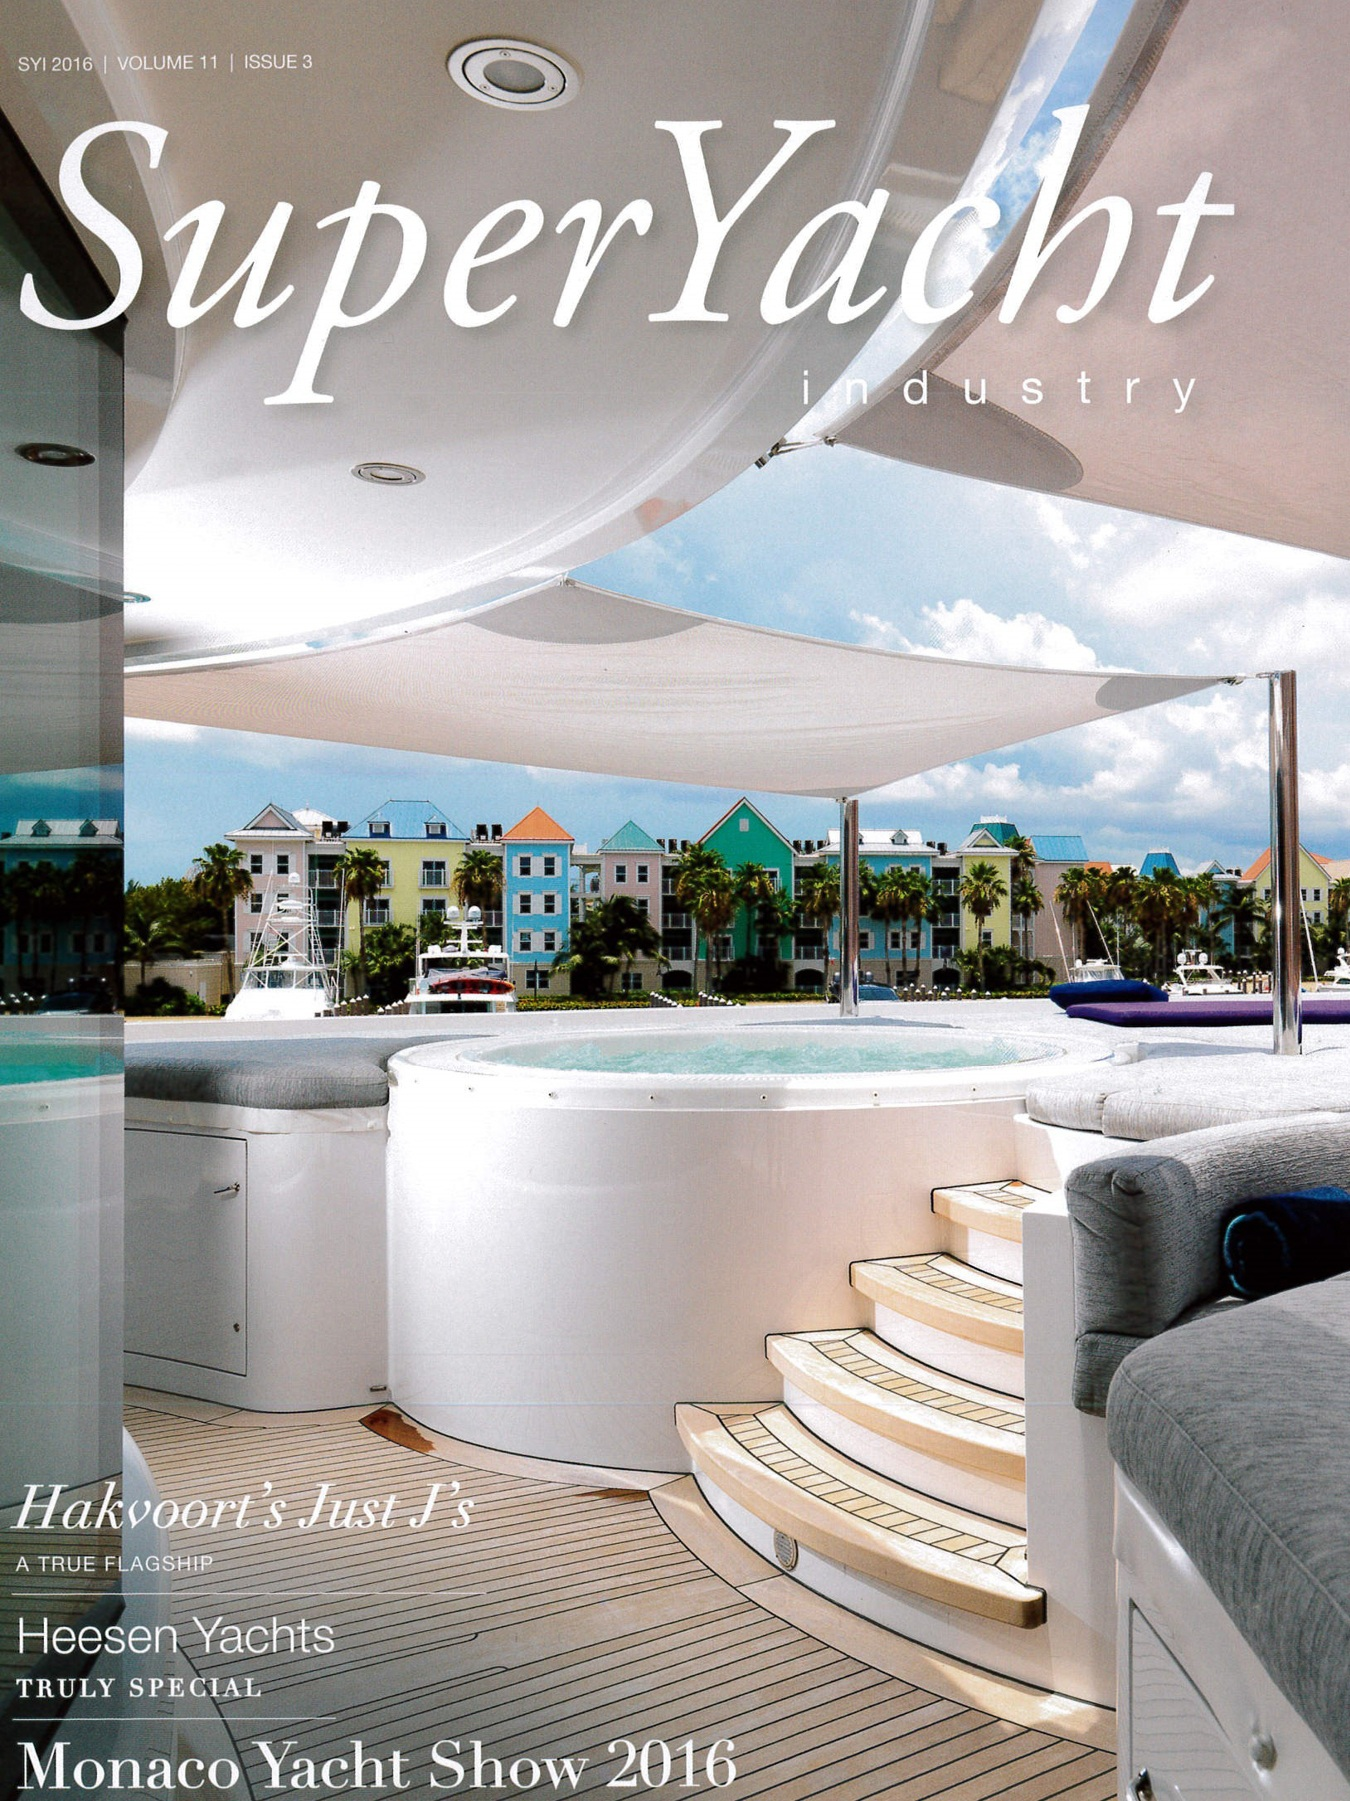 Superyacht industry voll issue 3_2.jpg